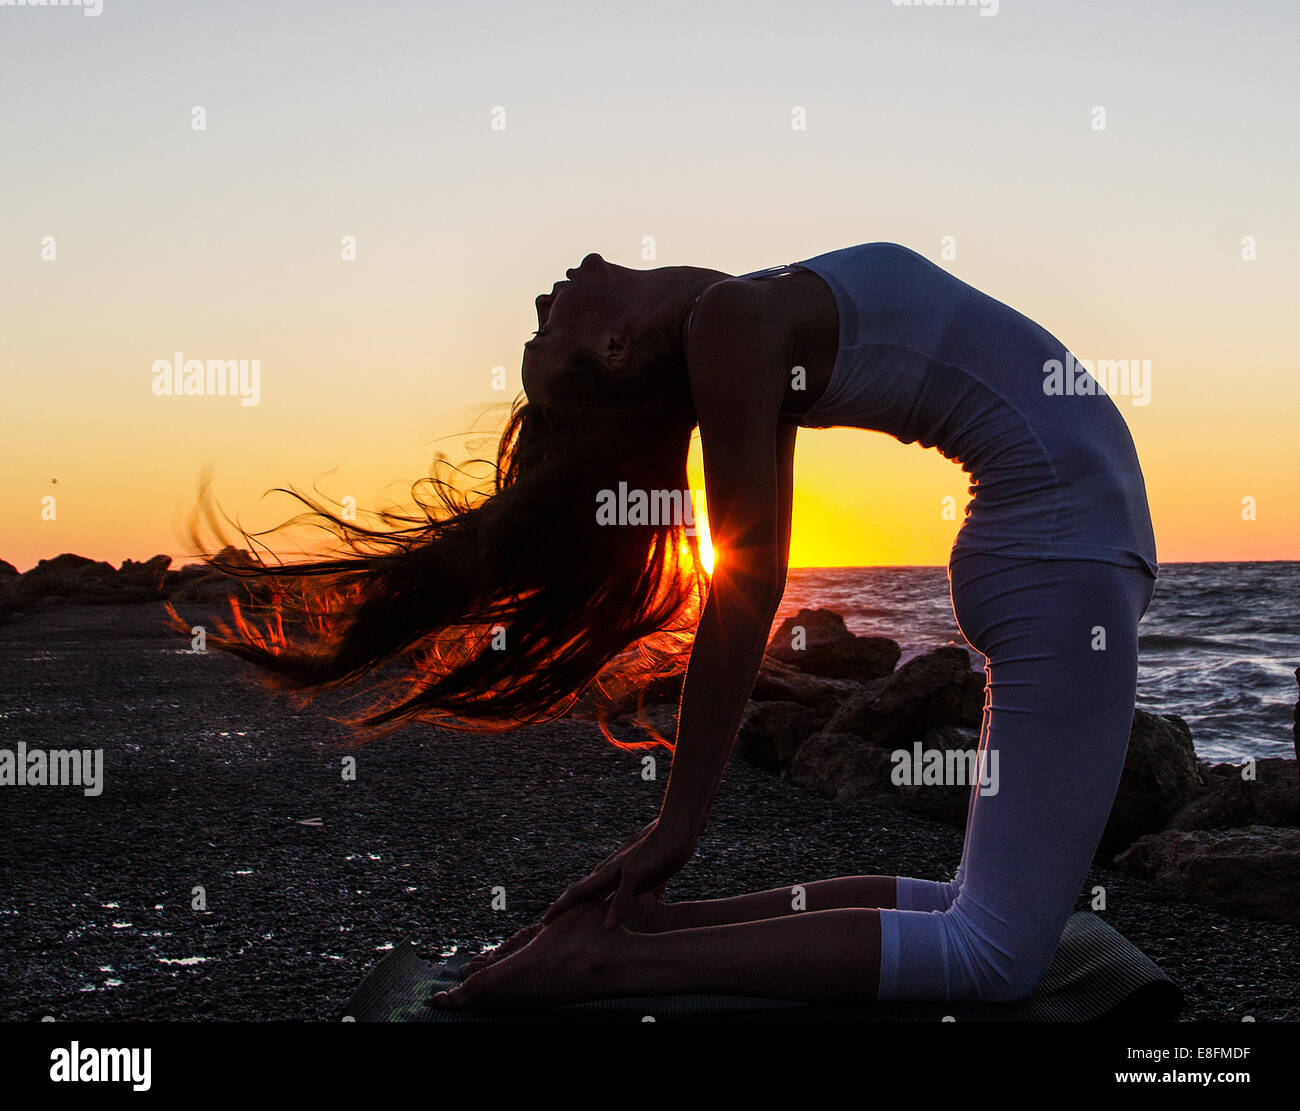 Woman practicing yoga on beach at sunset - Stock Image